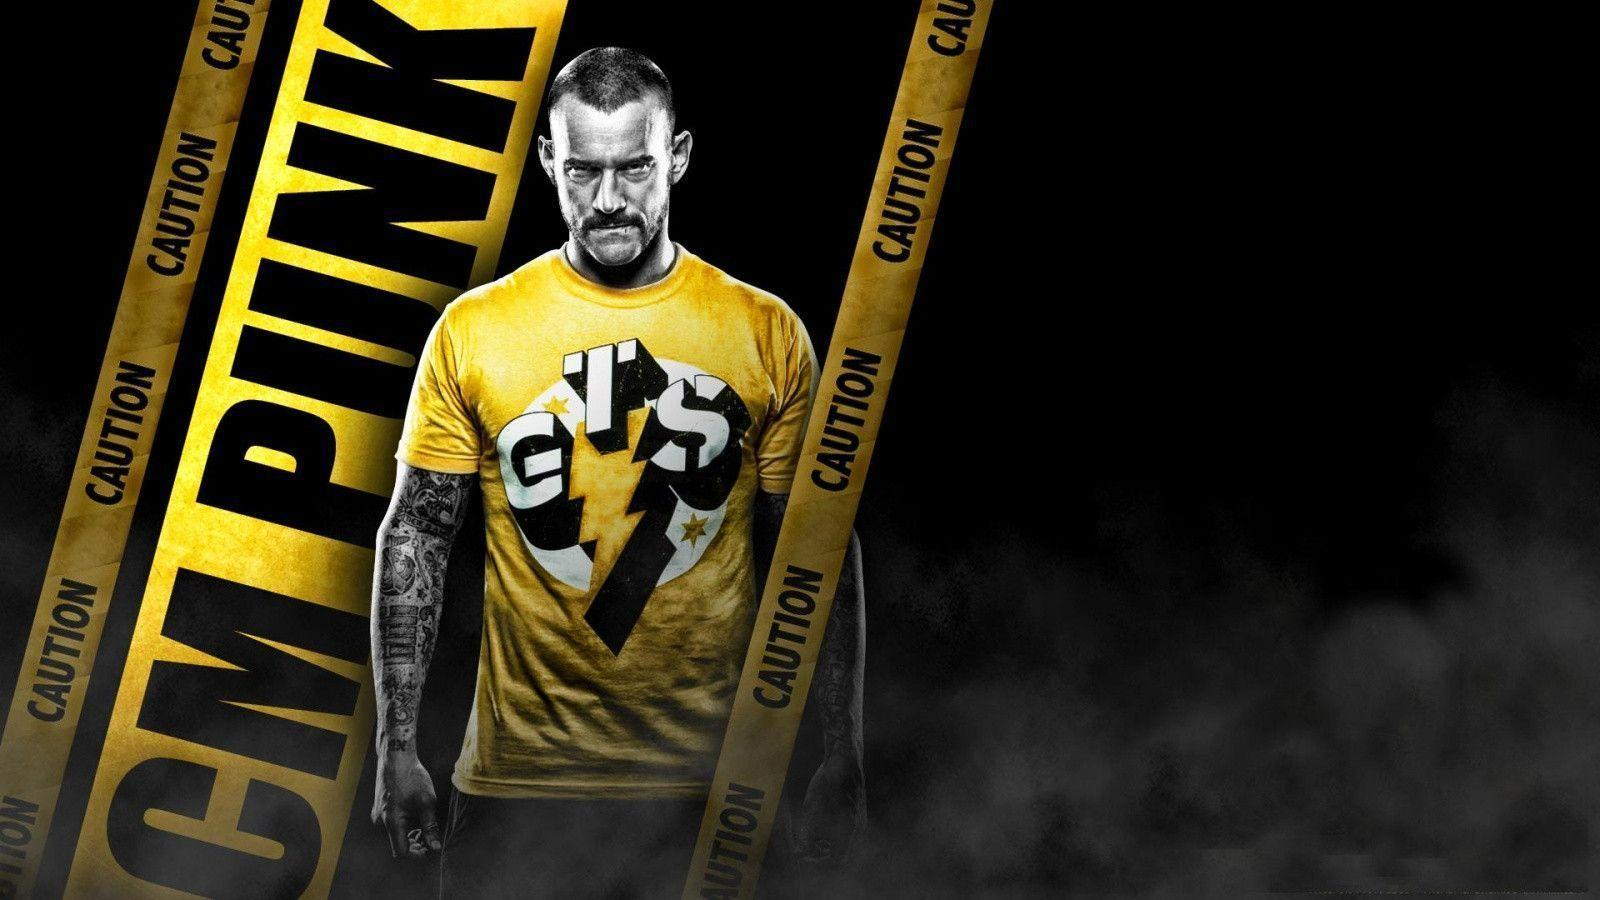 Wwe cm punk wallpapers 2015 wallpaper cave download hq wwe cm punk wallpaper hd wallpapers hq desktop voltagebd Choice Image